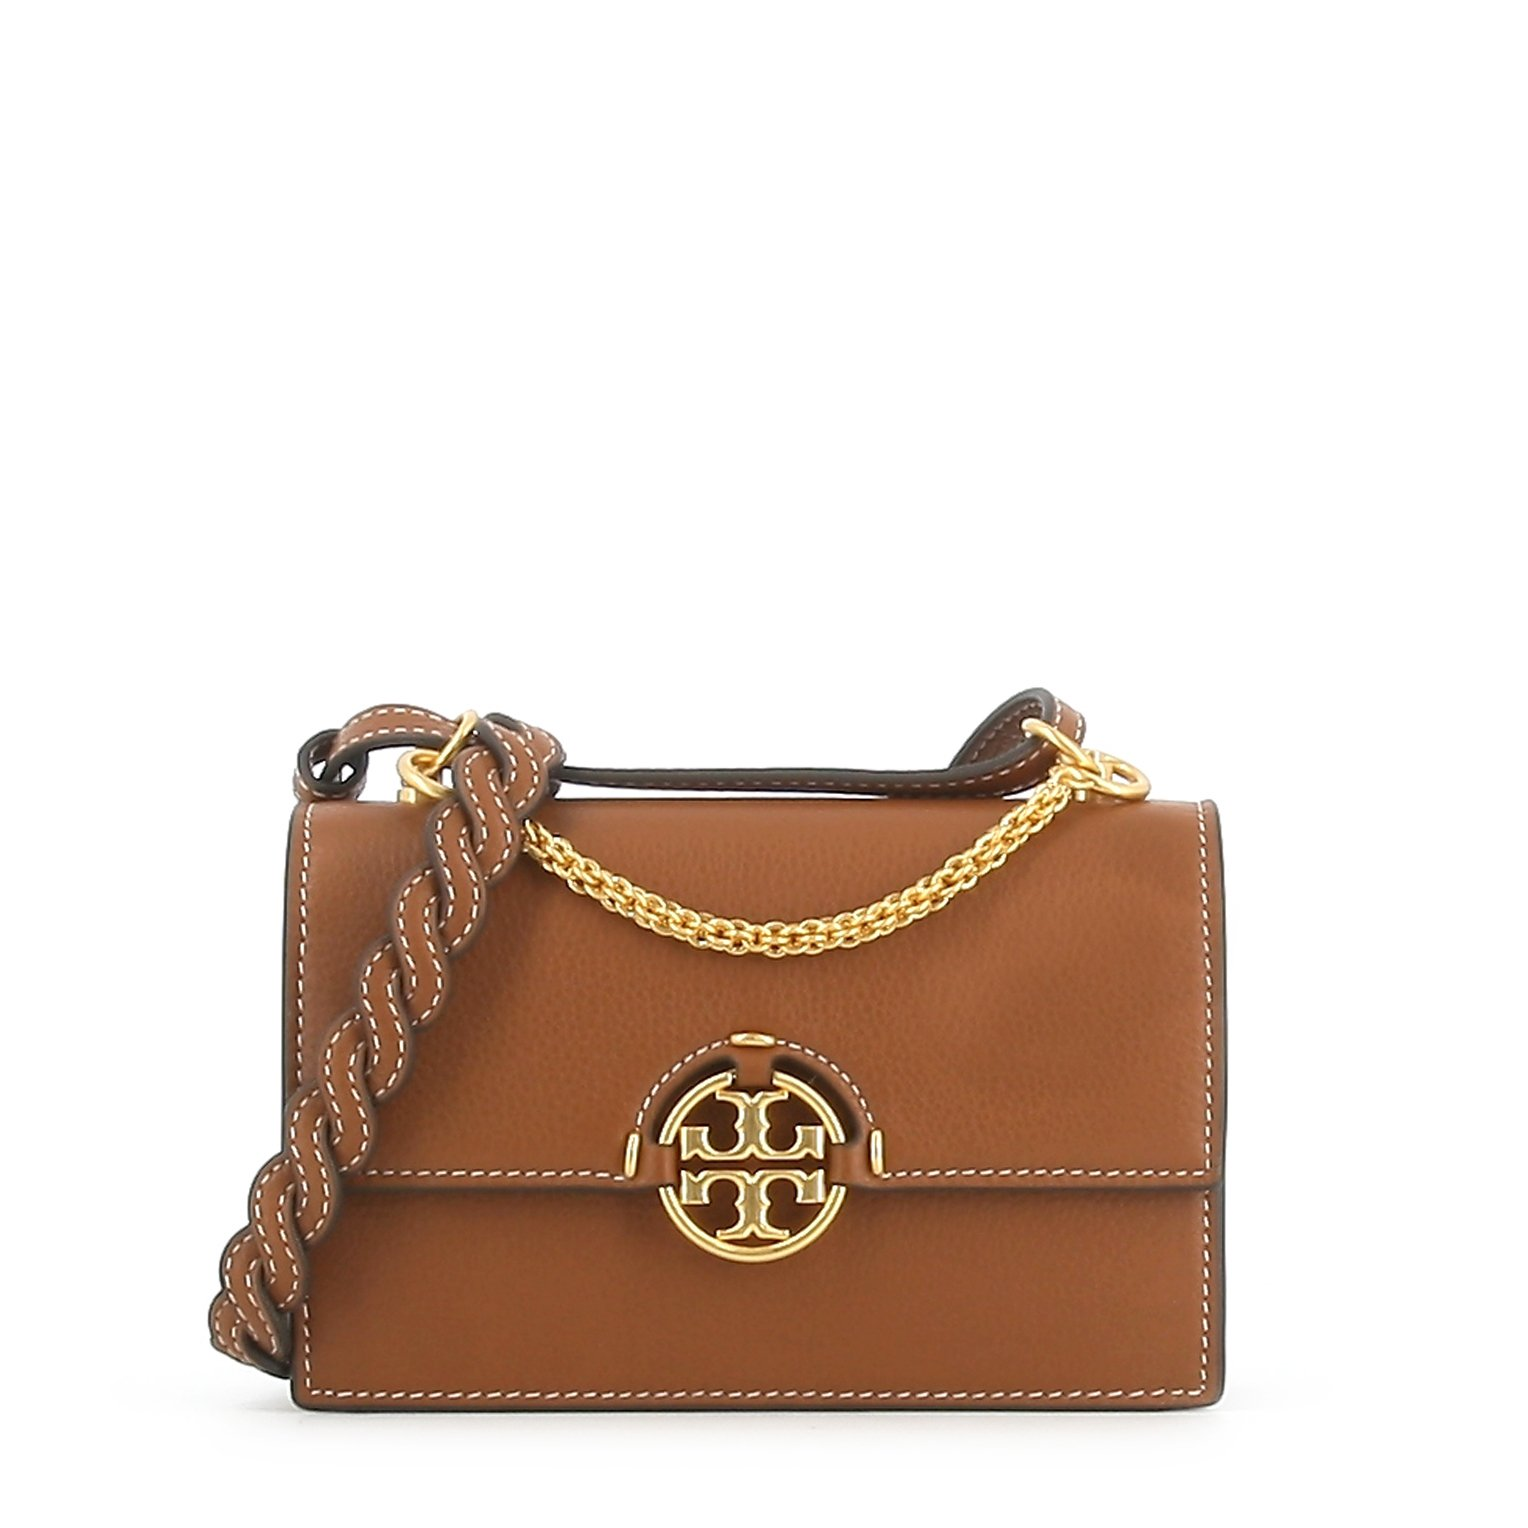 Tory Burch SHOULDER BAG WITH GOLD HANDLE